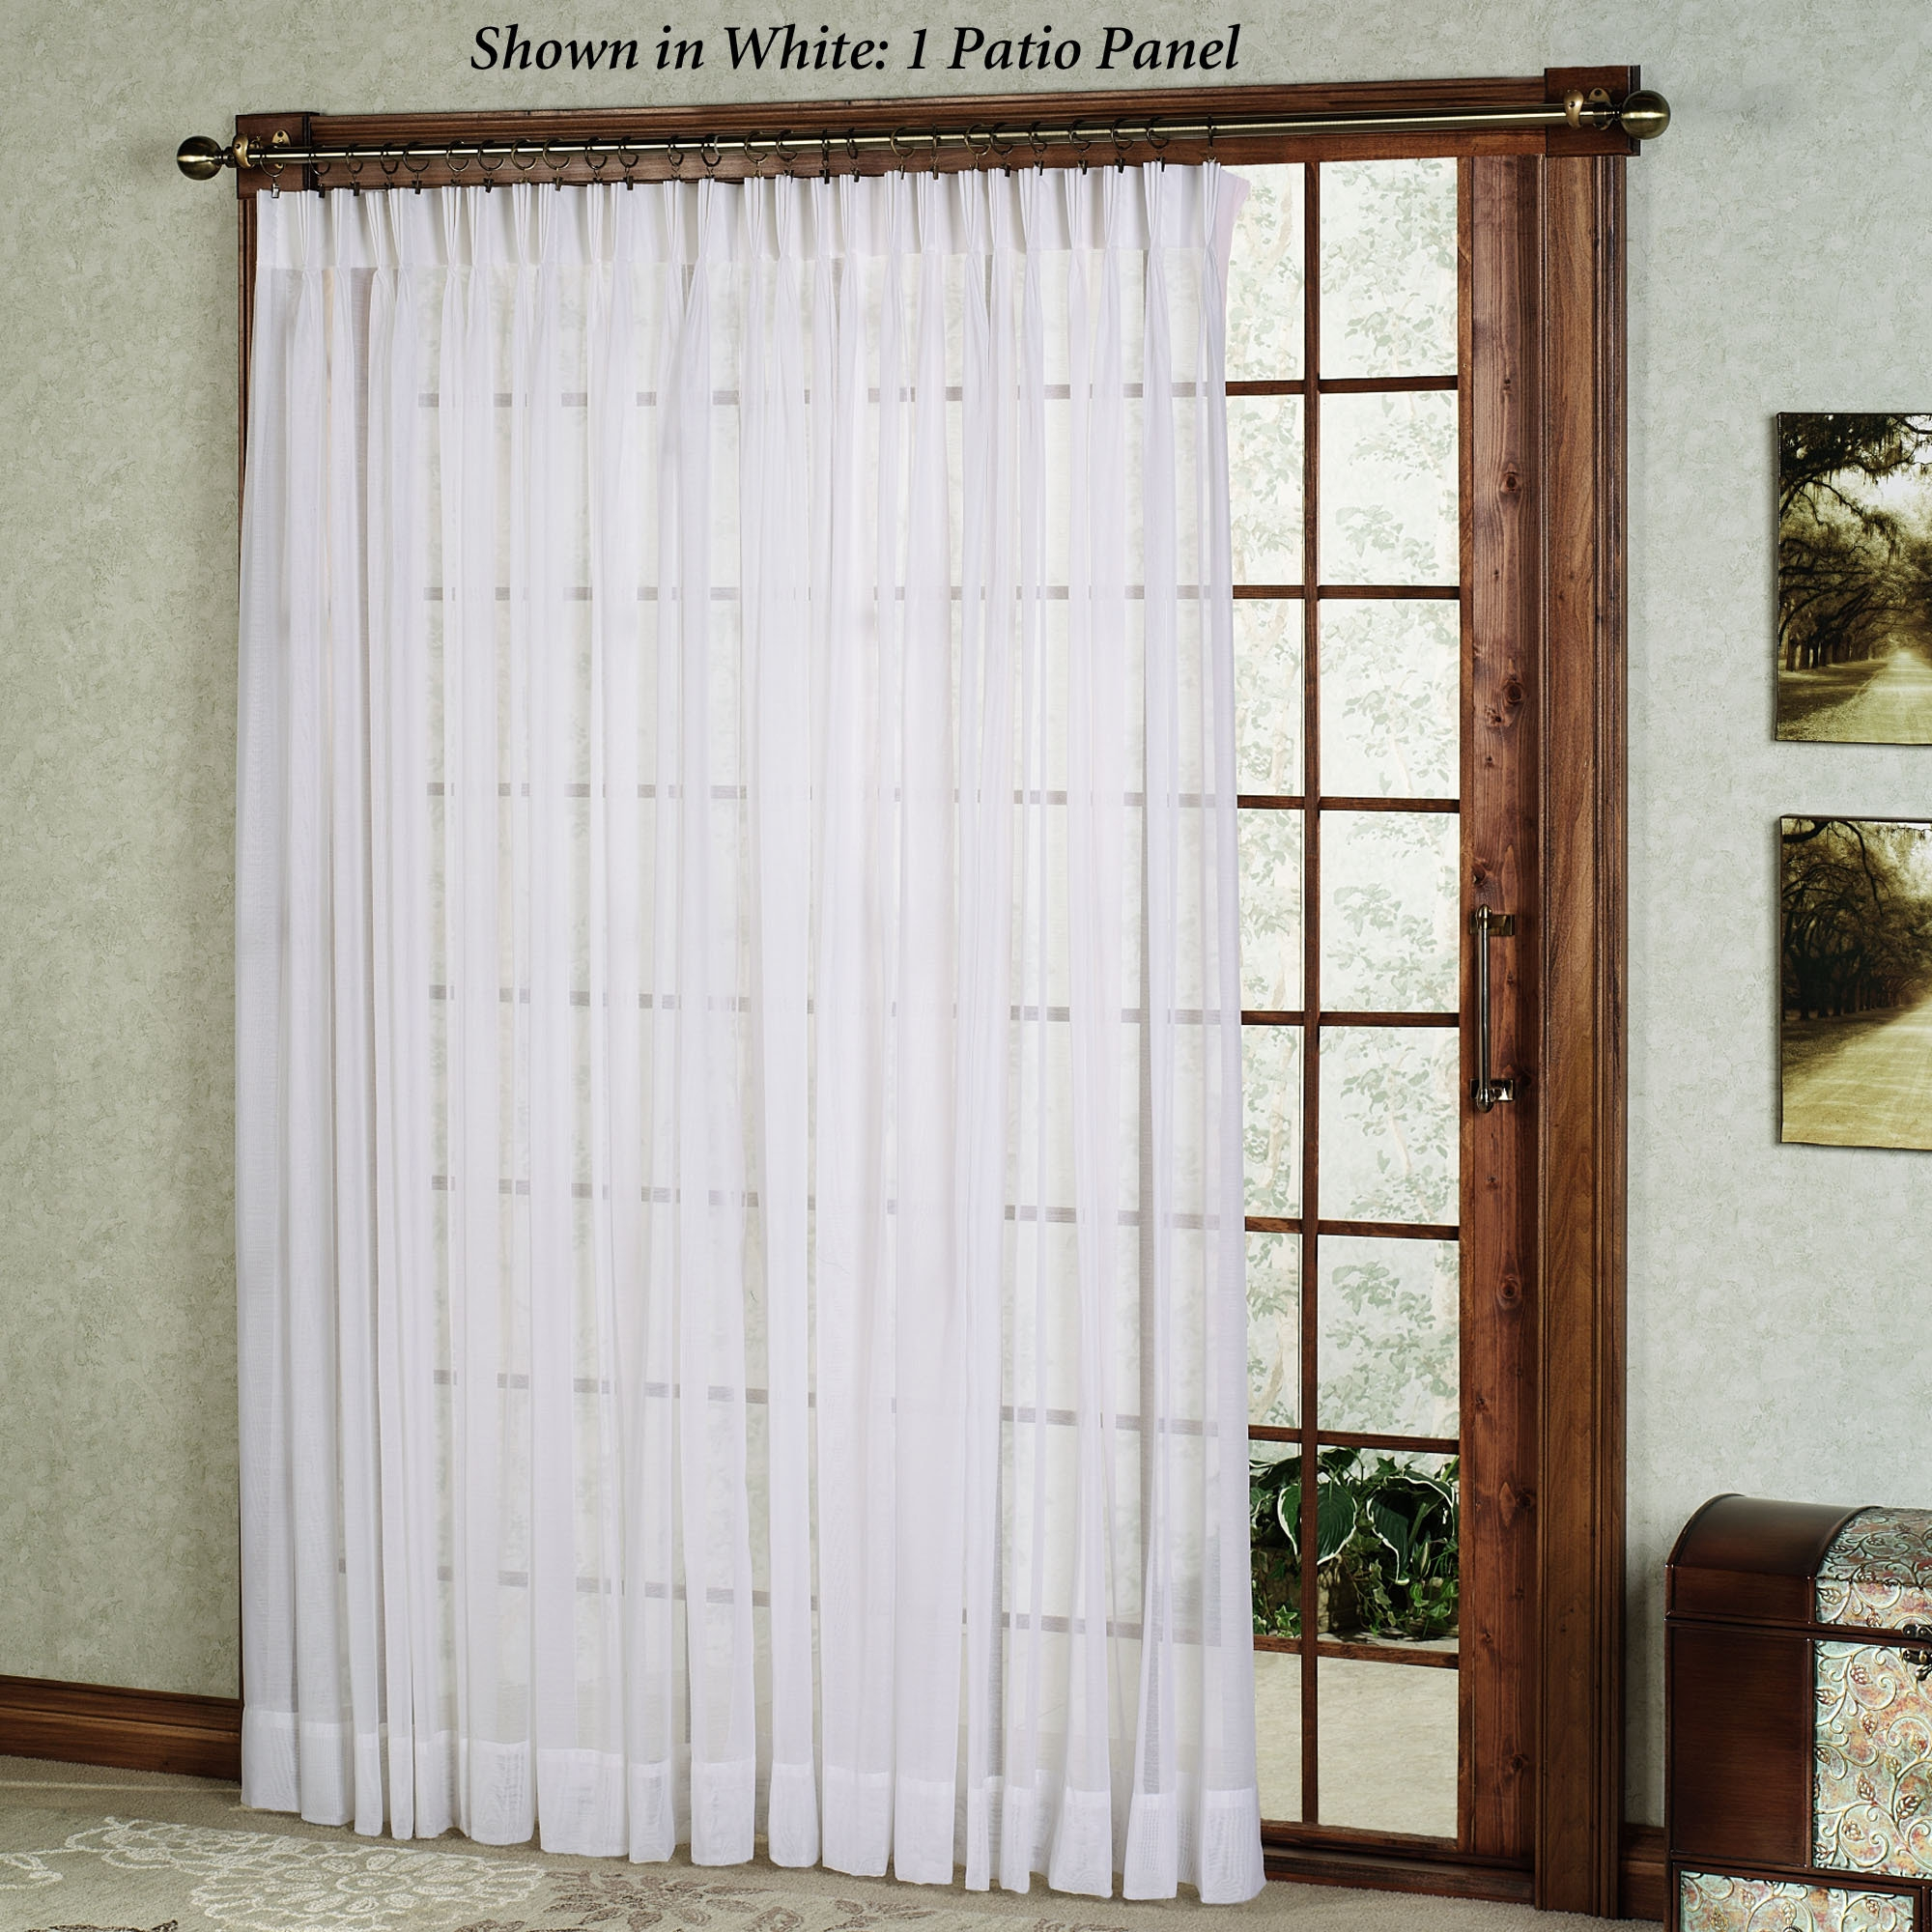 Glass Door Curtains Home Design Ideas Gigforest For Sliding Glass Door Curtains (Image 12 of 25)